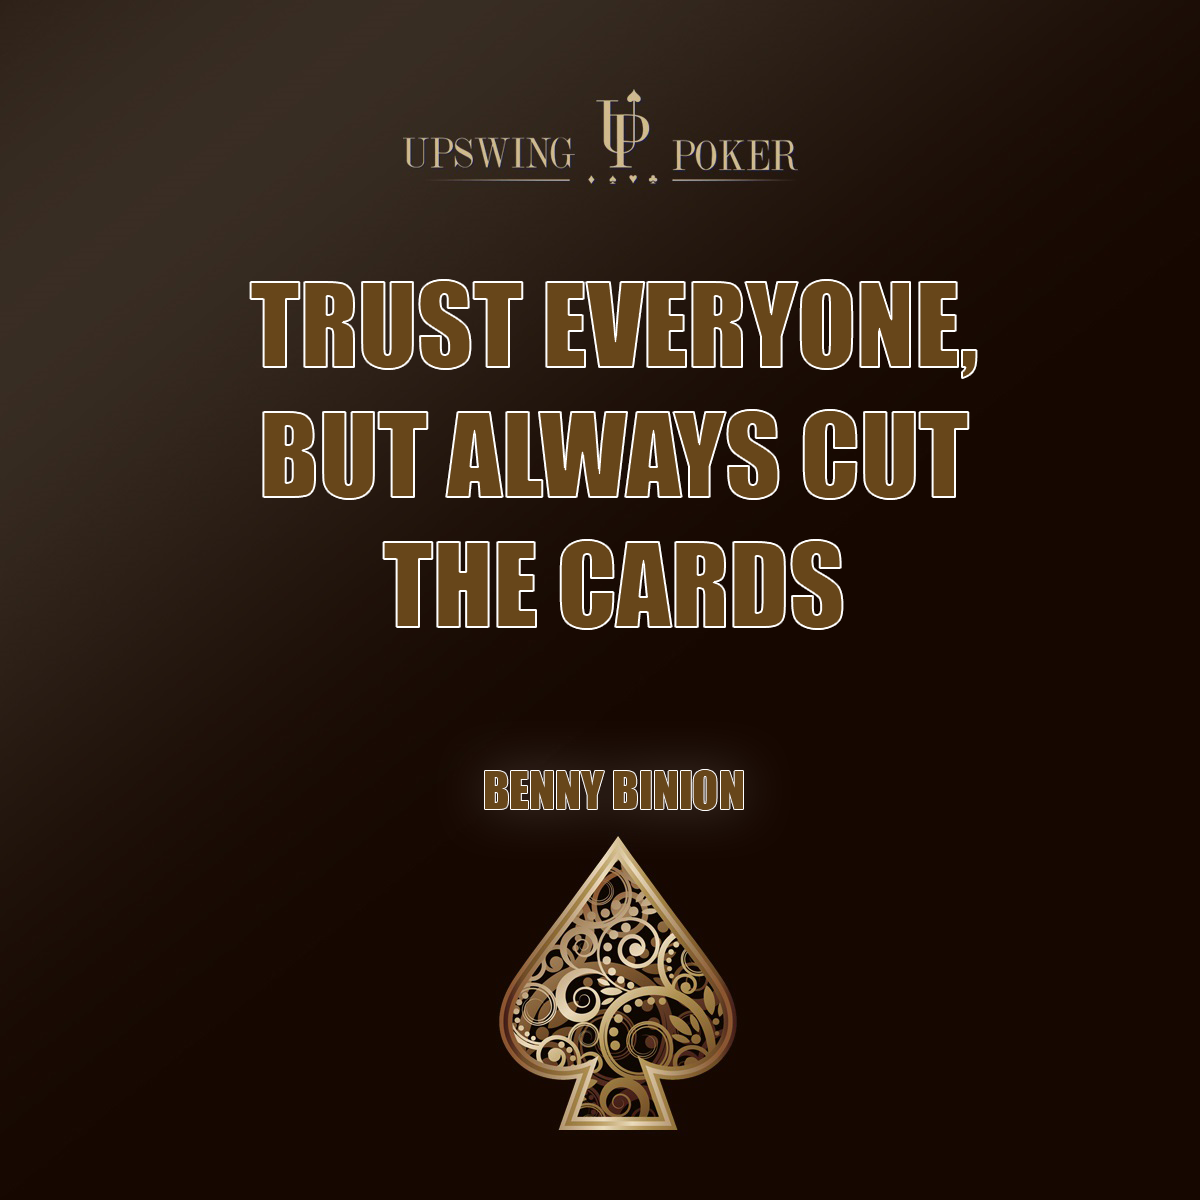 The 101 Best Quotes about Poker Inspirational, True, and